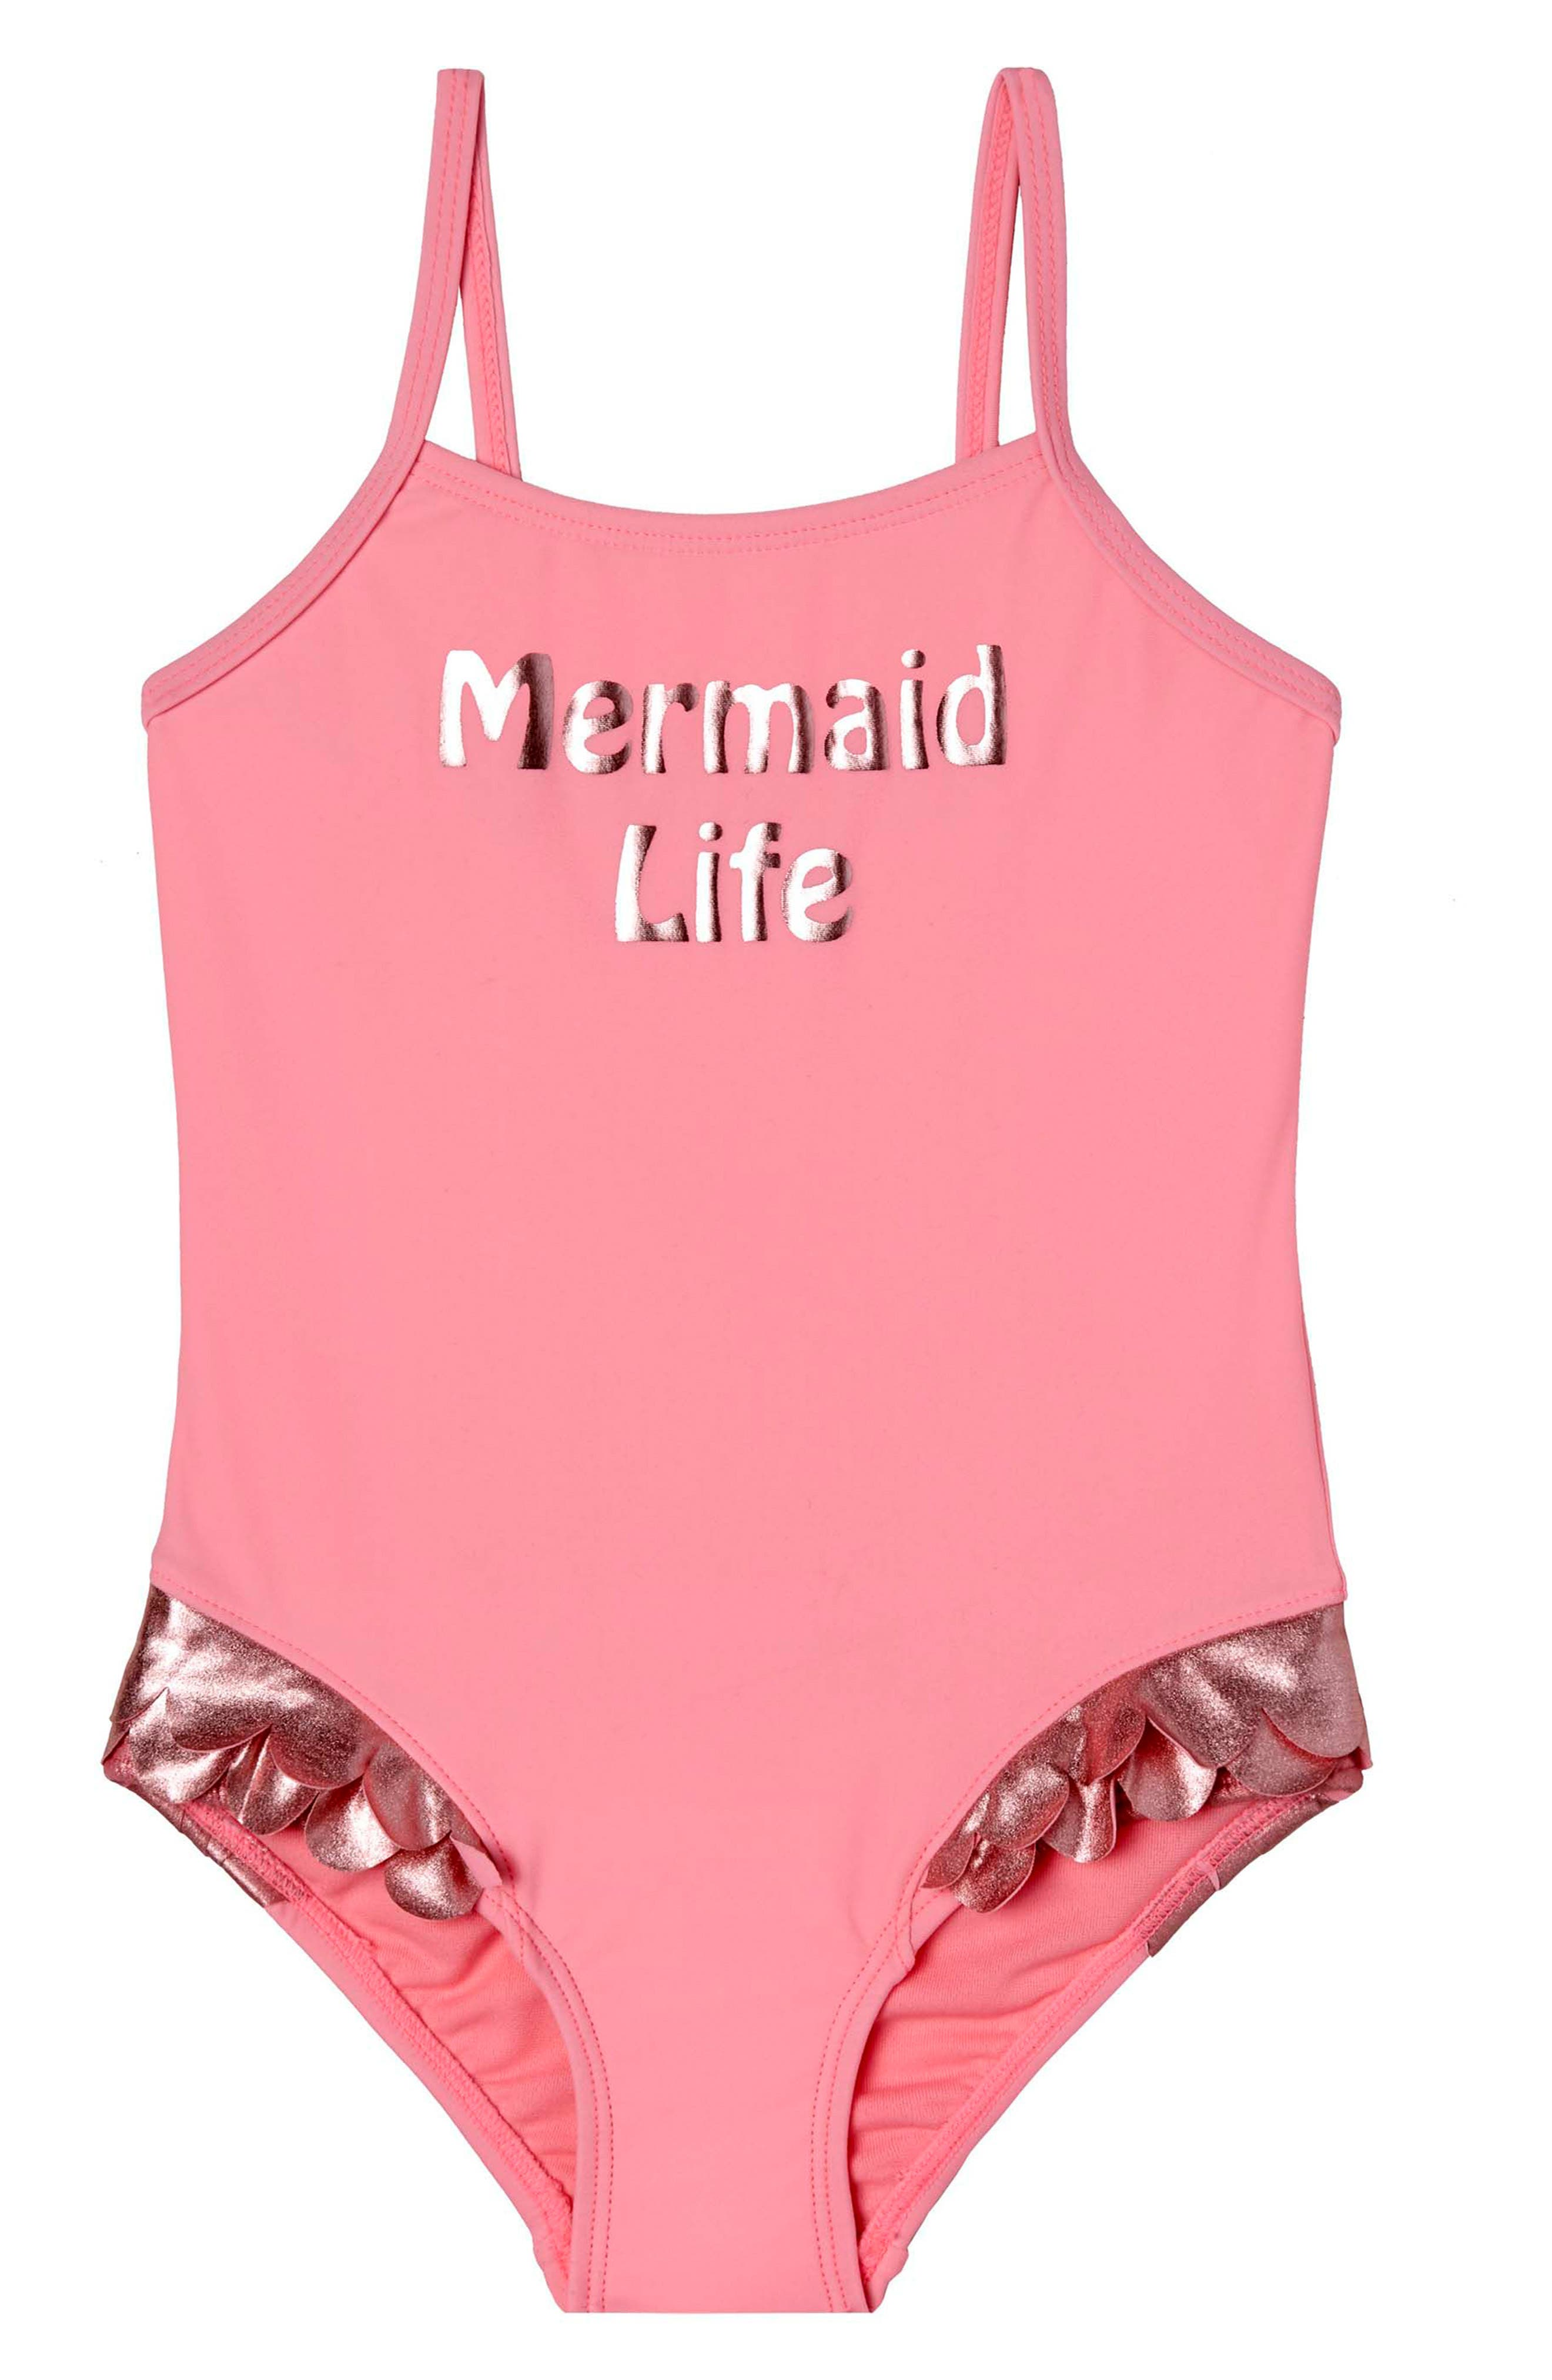 Hula Star Mermaid Life One-Piece Swimsuit (Toddler Girls & Little Girls)